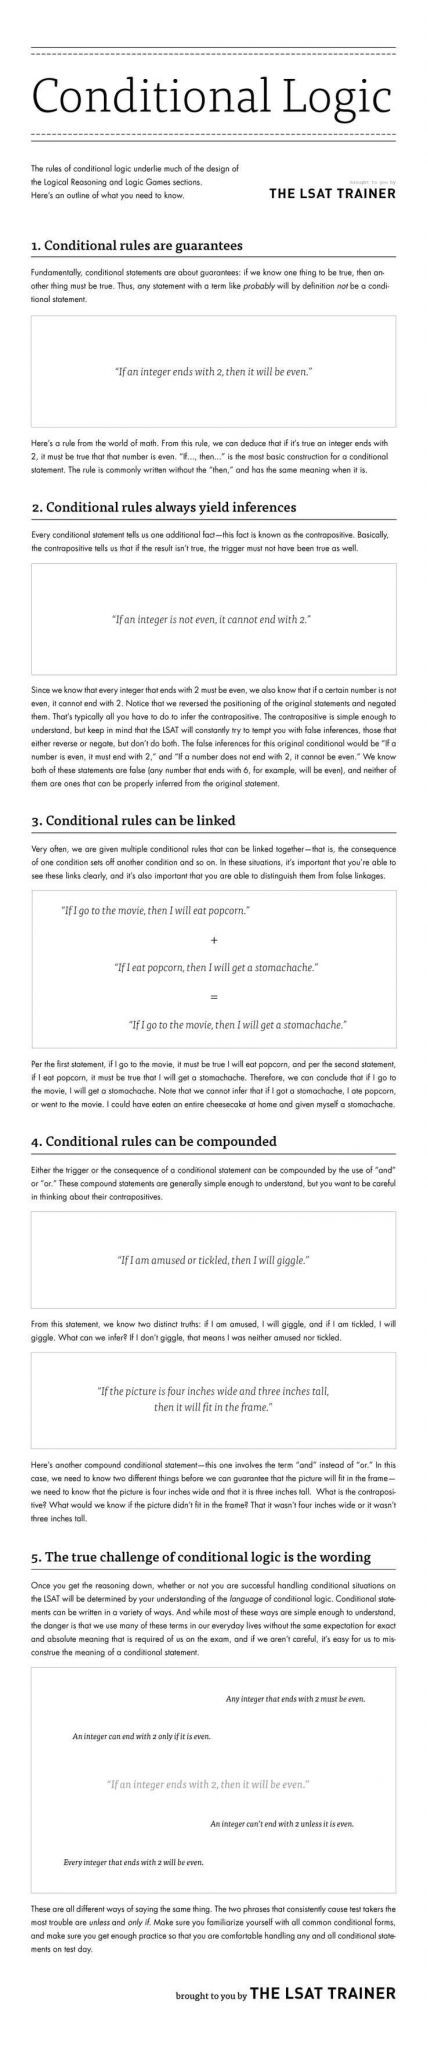 Congress In A Flash Worksheet Answers or 36 Best Law Images On Pinterest